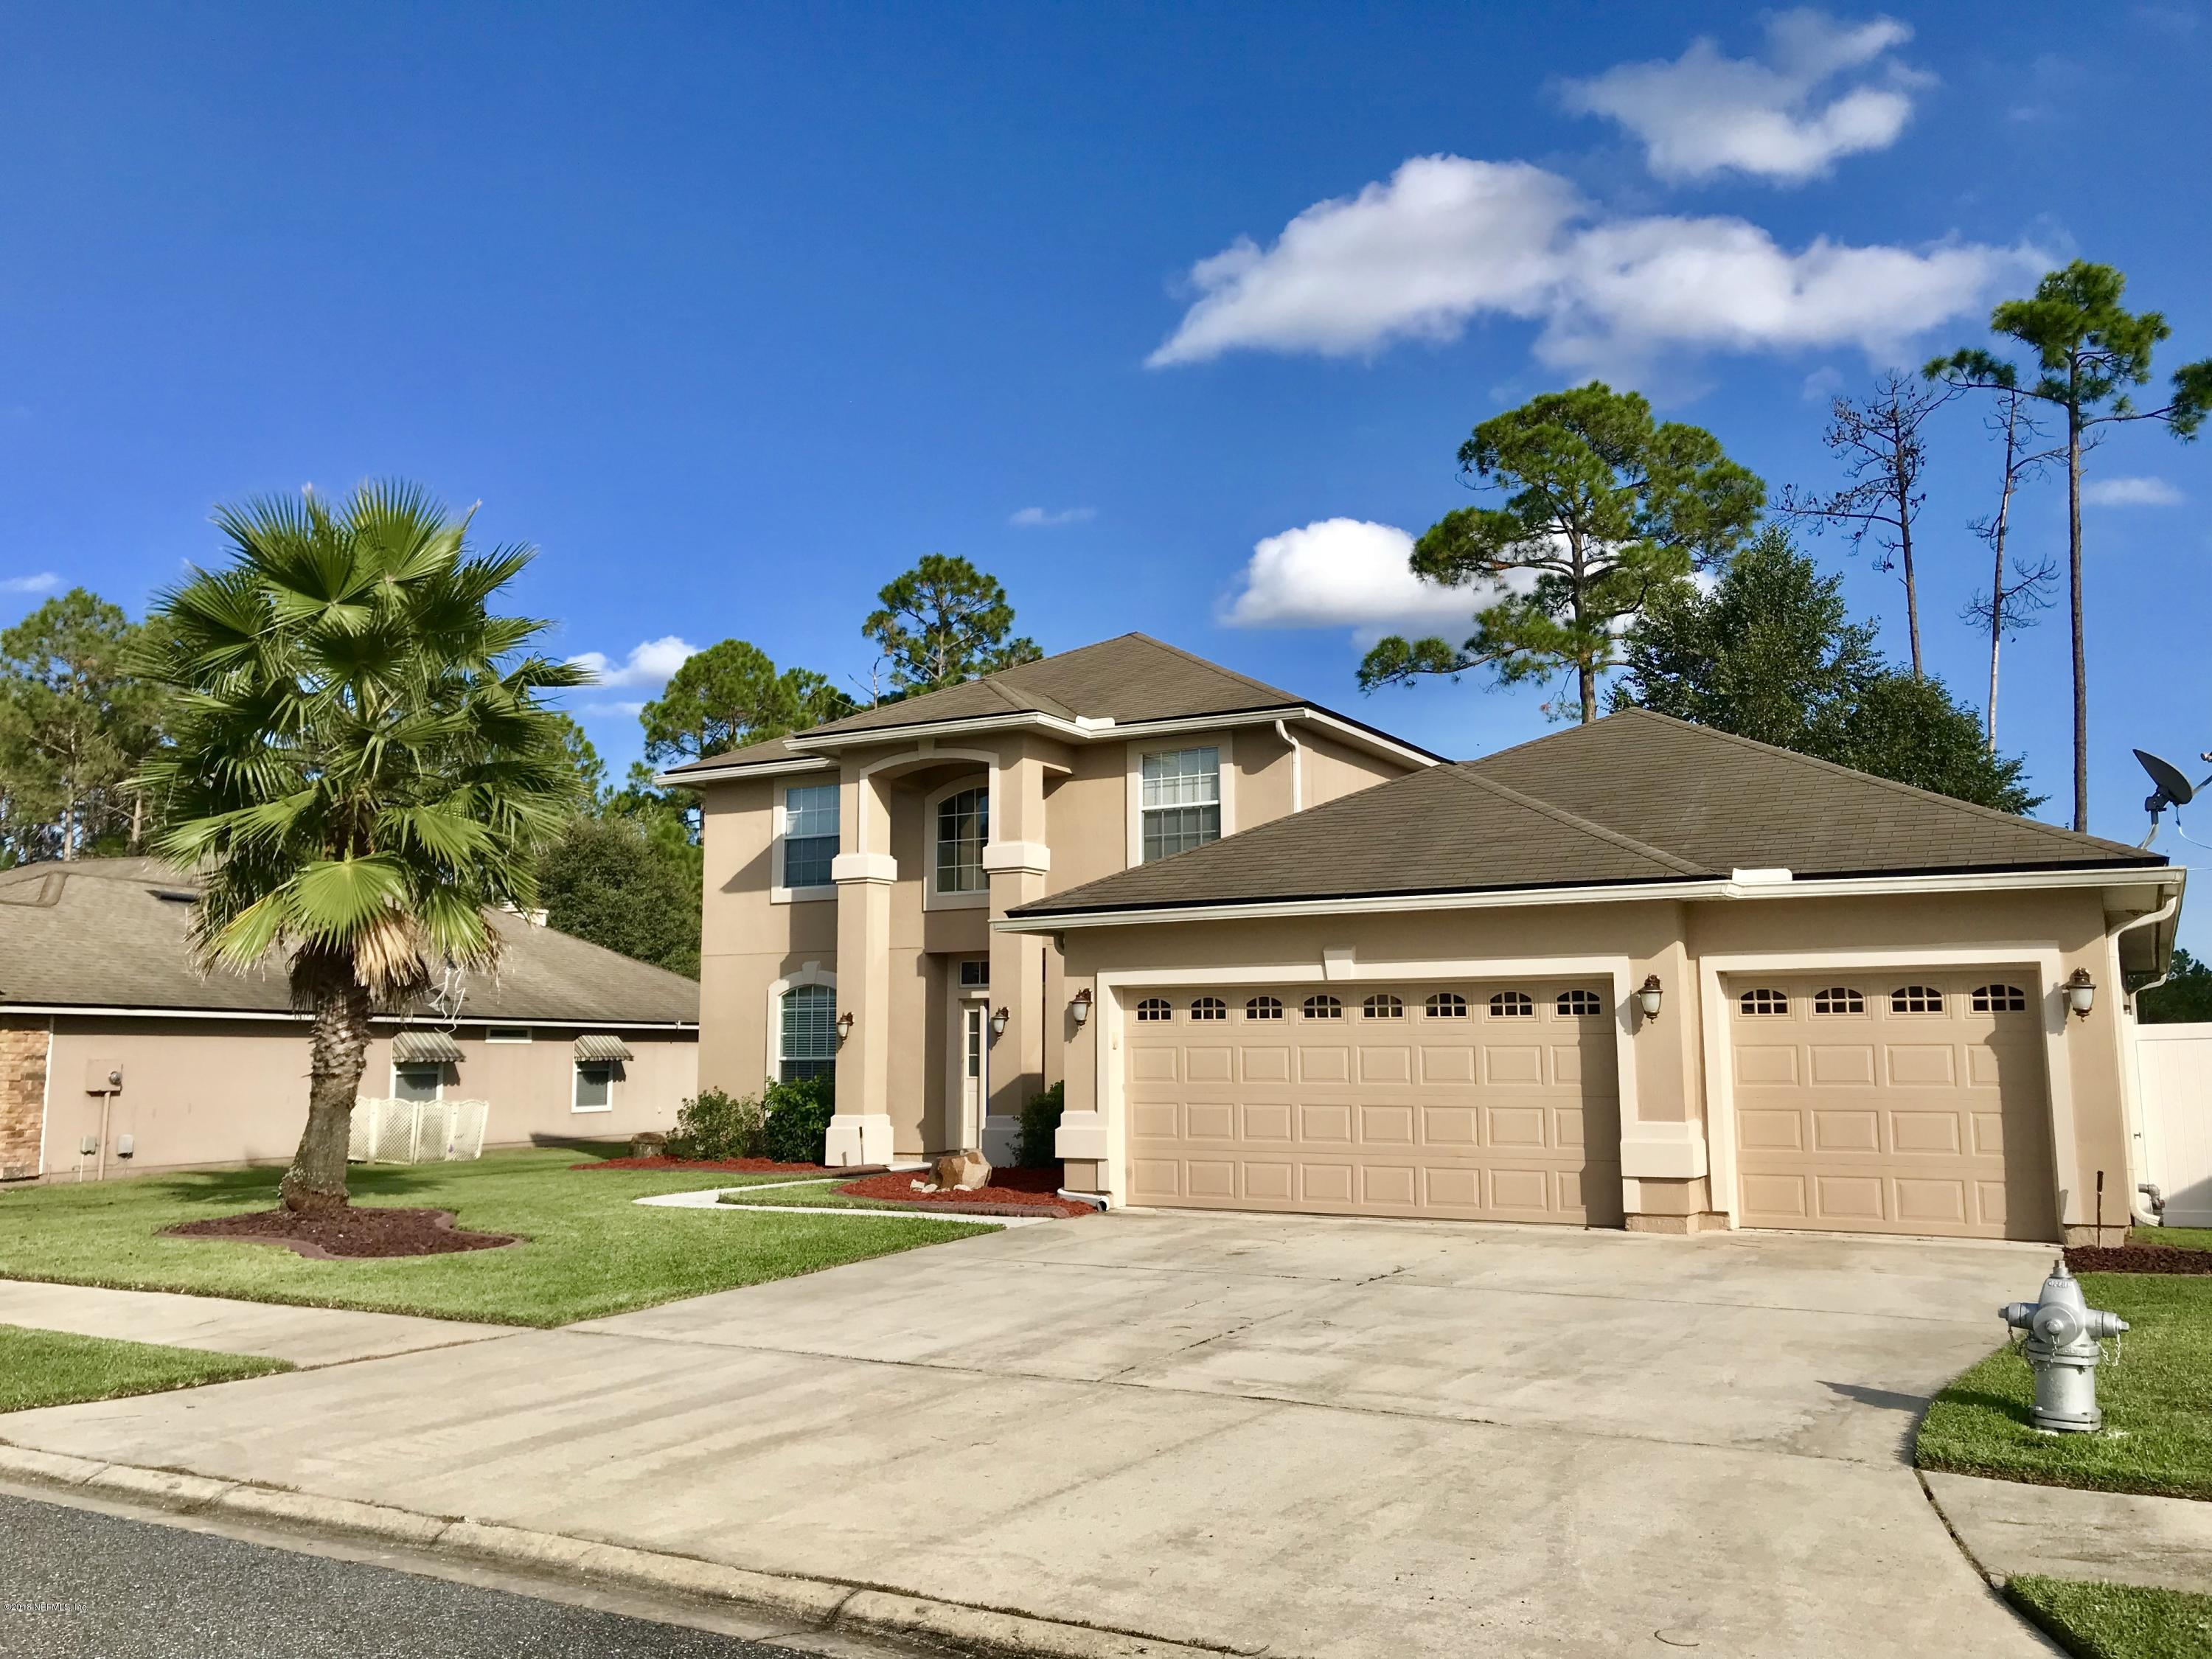 3123 SILVERADO, GREEN COVE SPRINGS, FLORIDA 32043, 5 Bedrooms Bedrooms, ,3 BathroomsBathrooms,Residential - single family,For sale,SILVERADO,959370